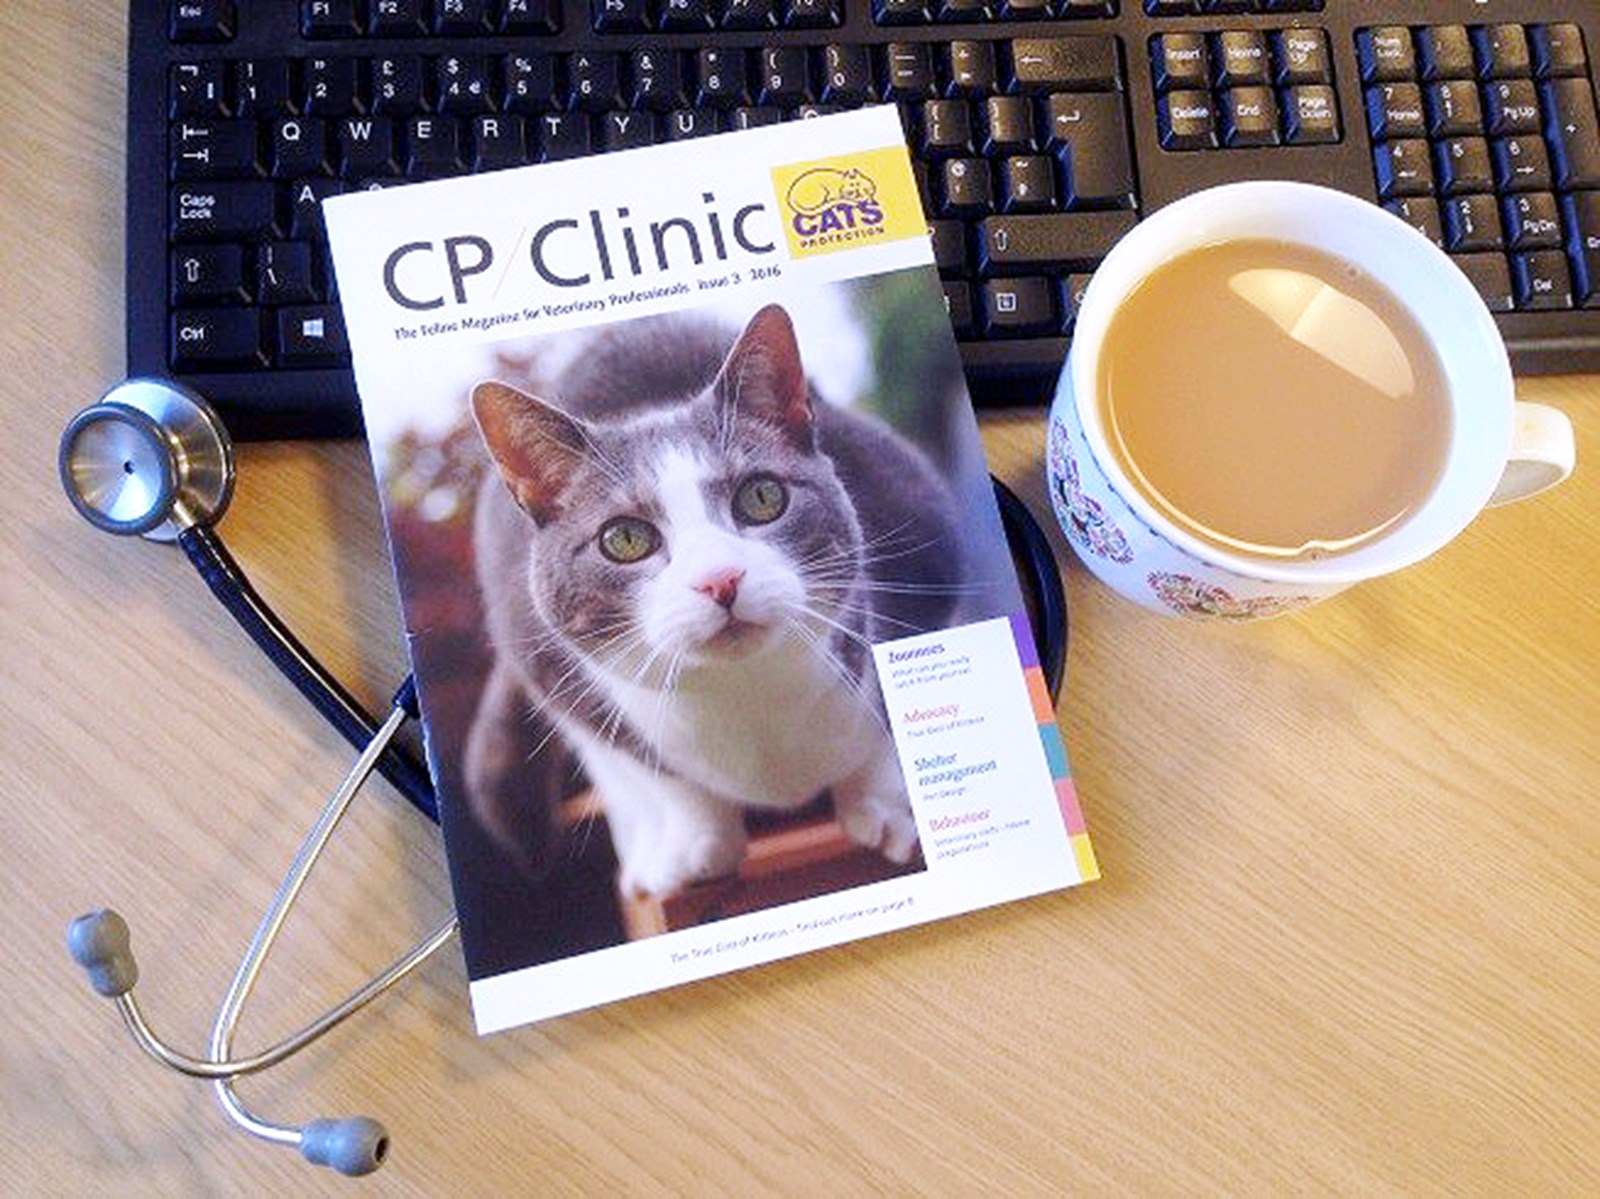 CP Clinic cats protection book